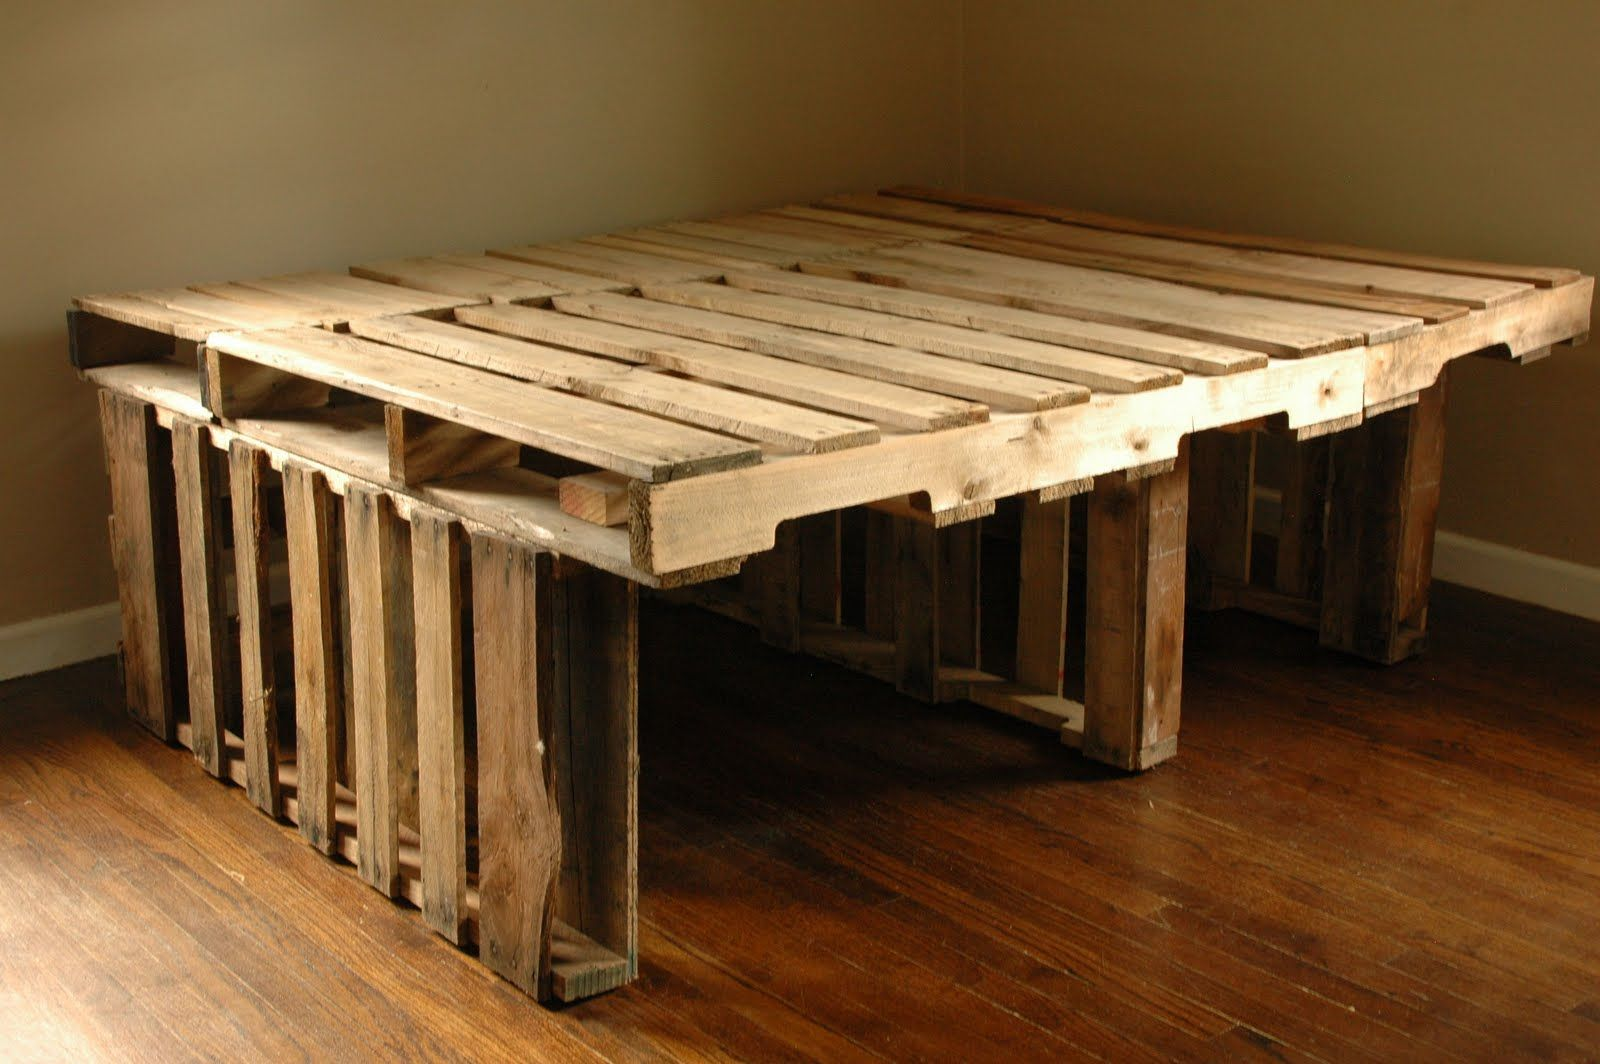 Pallet beds on pinterest pallet beds pallet bed for Pallet platform bed with storage